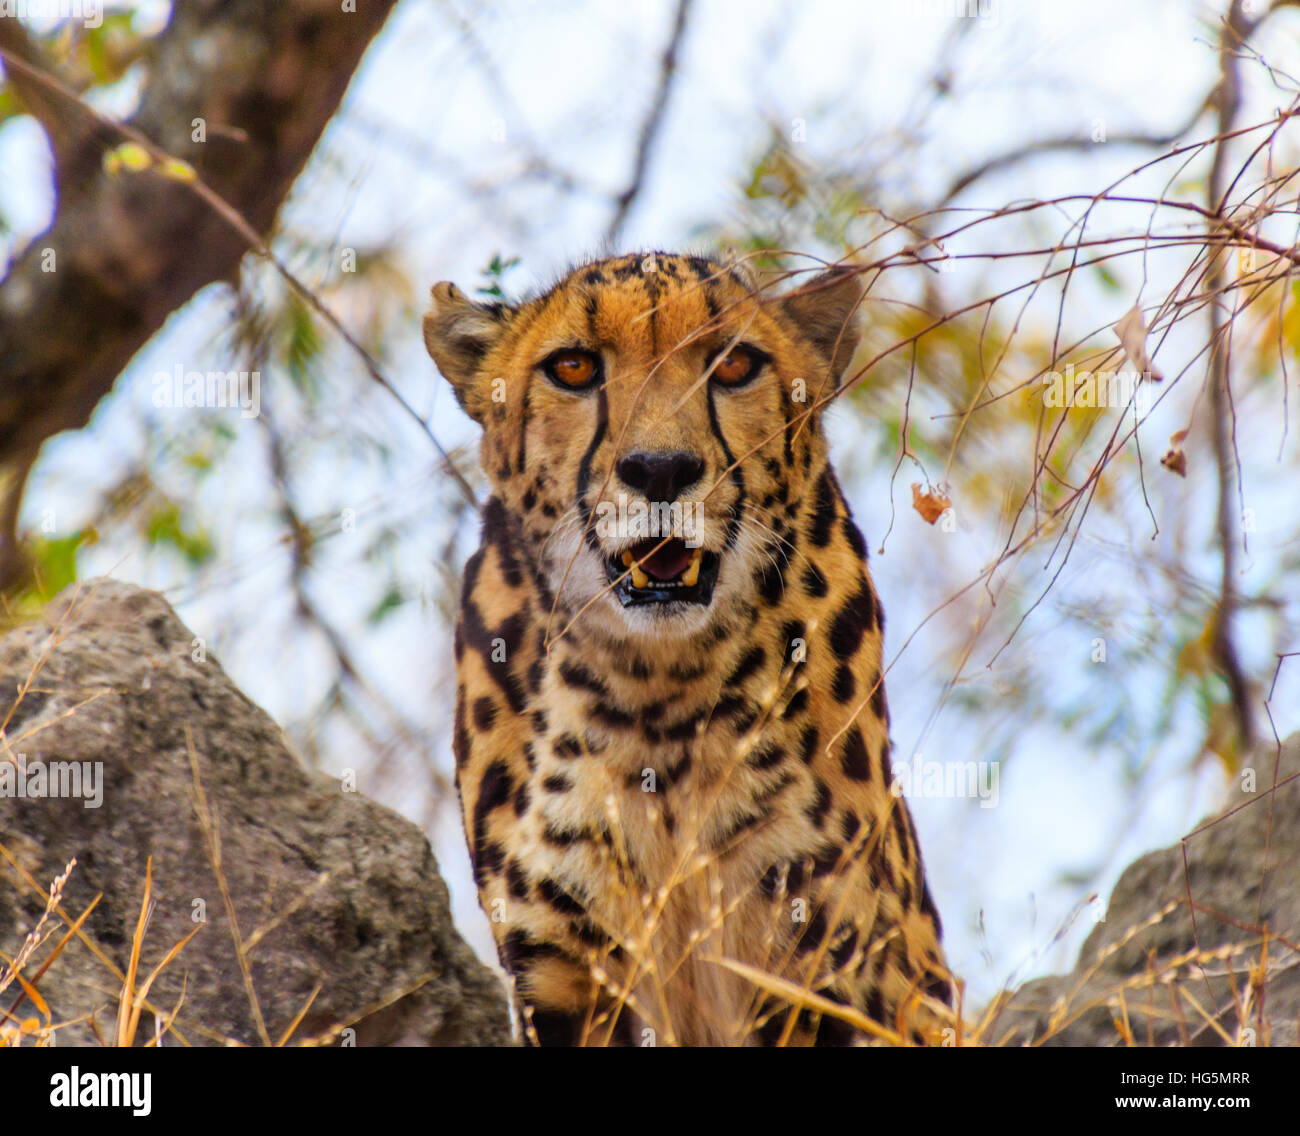 A Cheetah watches you - Stock Image